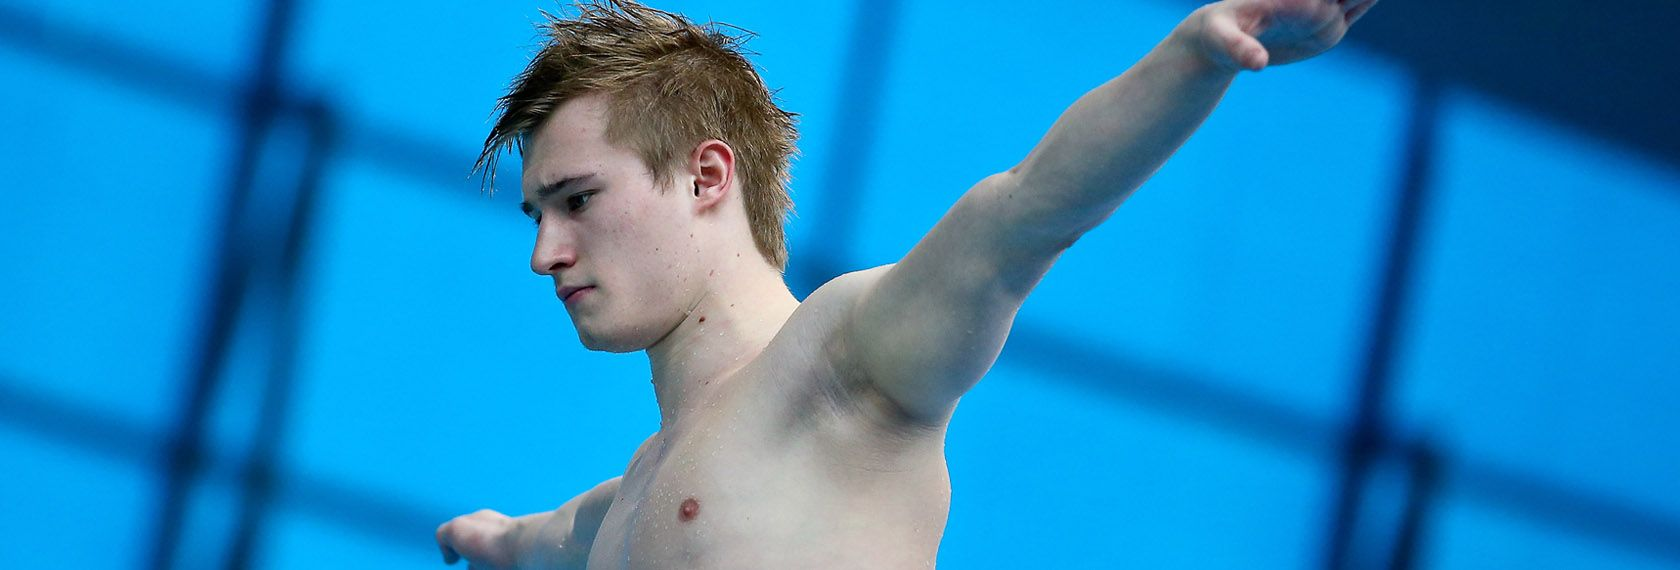 Jack Laugher Post image.jpg